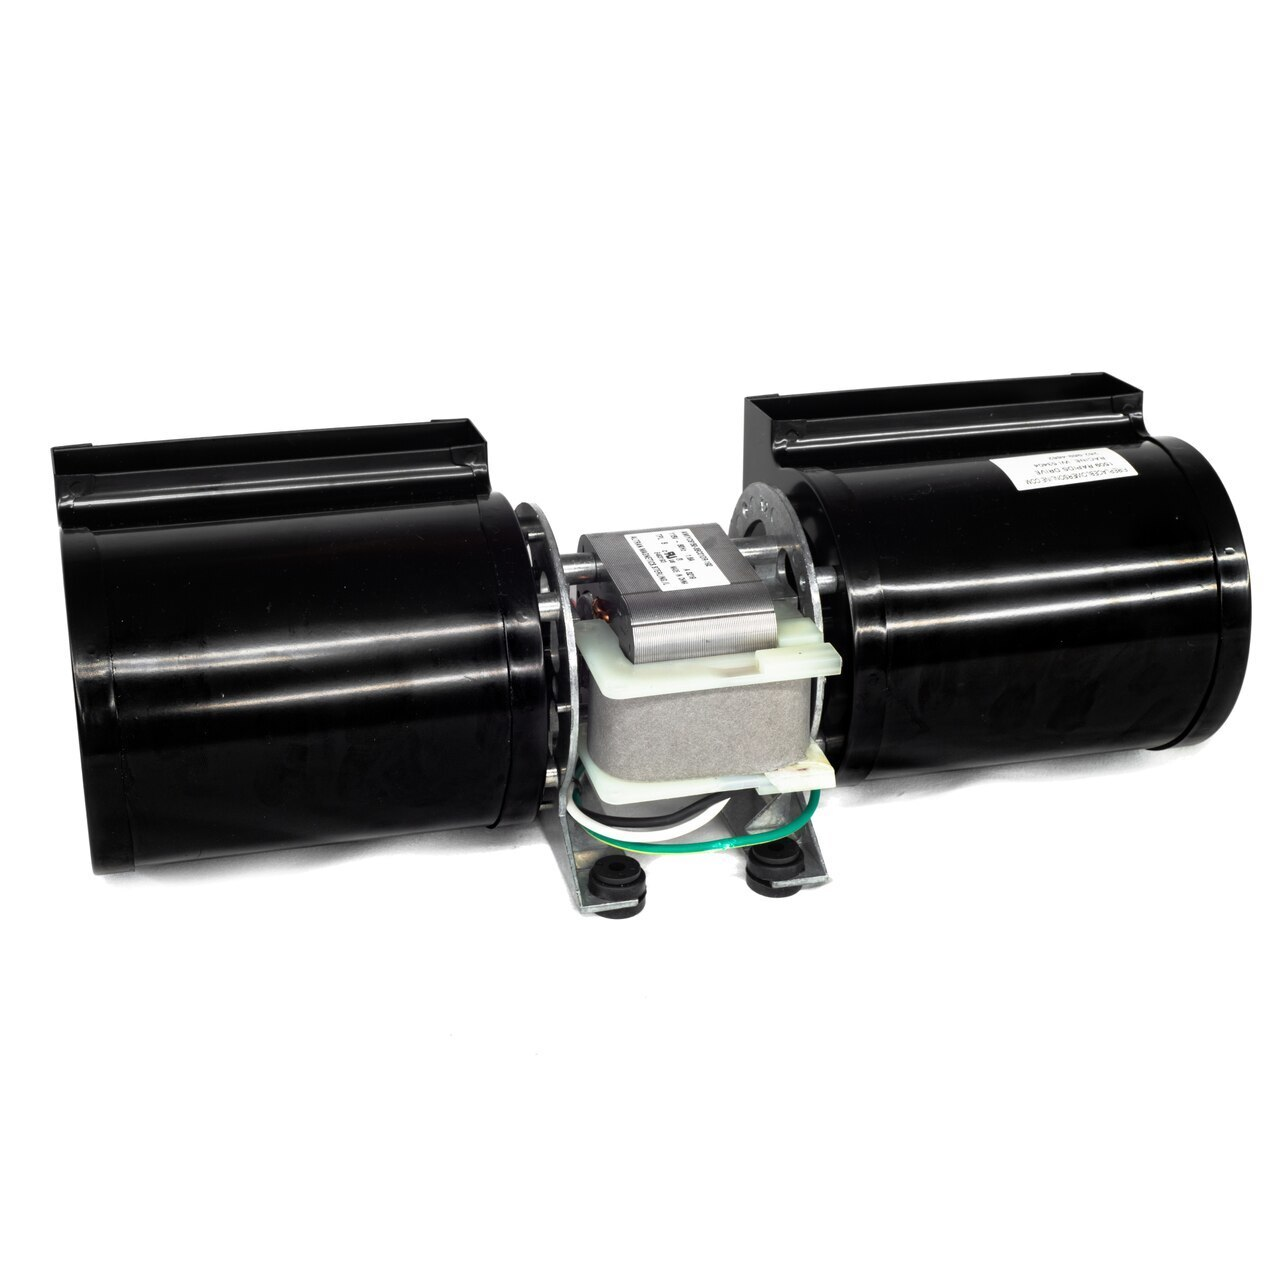 812-4900 Aftermarket Convection Blower for Heatilator, Heat & Glo and Quadra-Fire Fireplaces